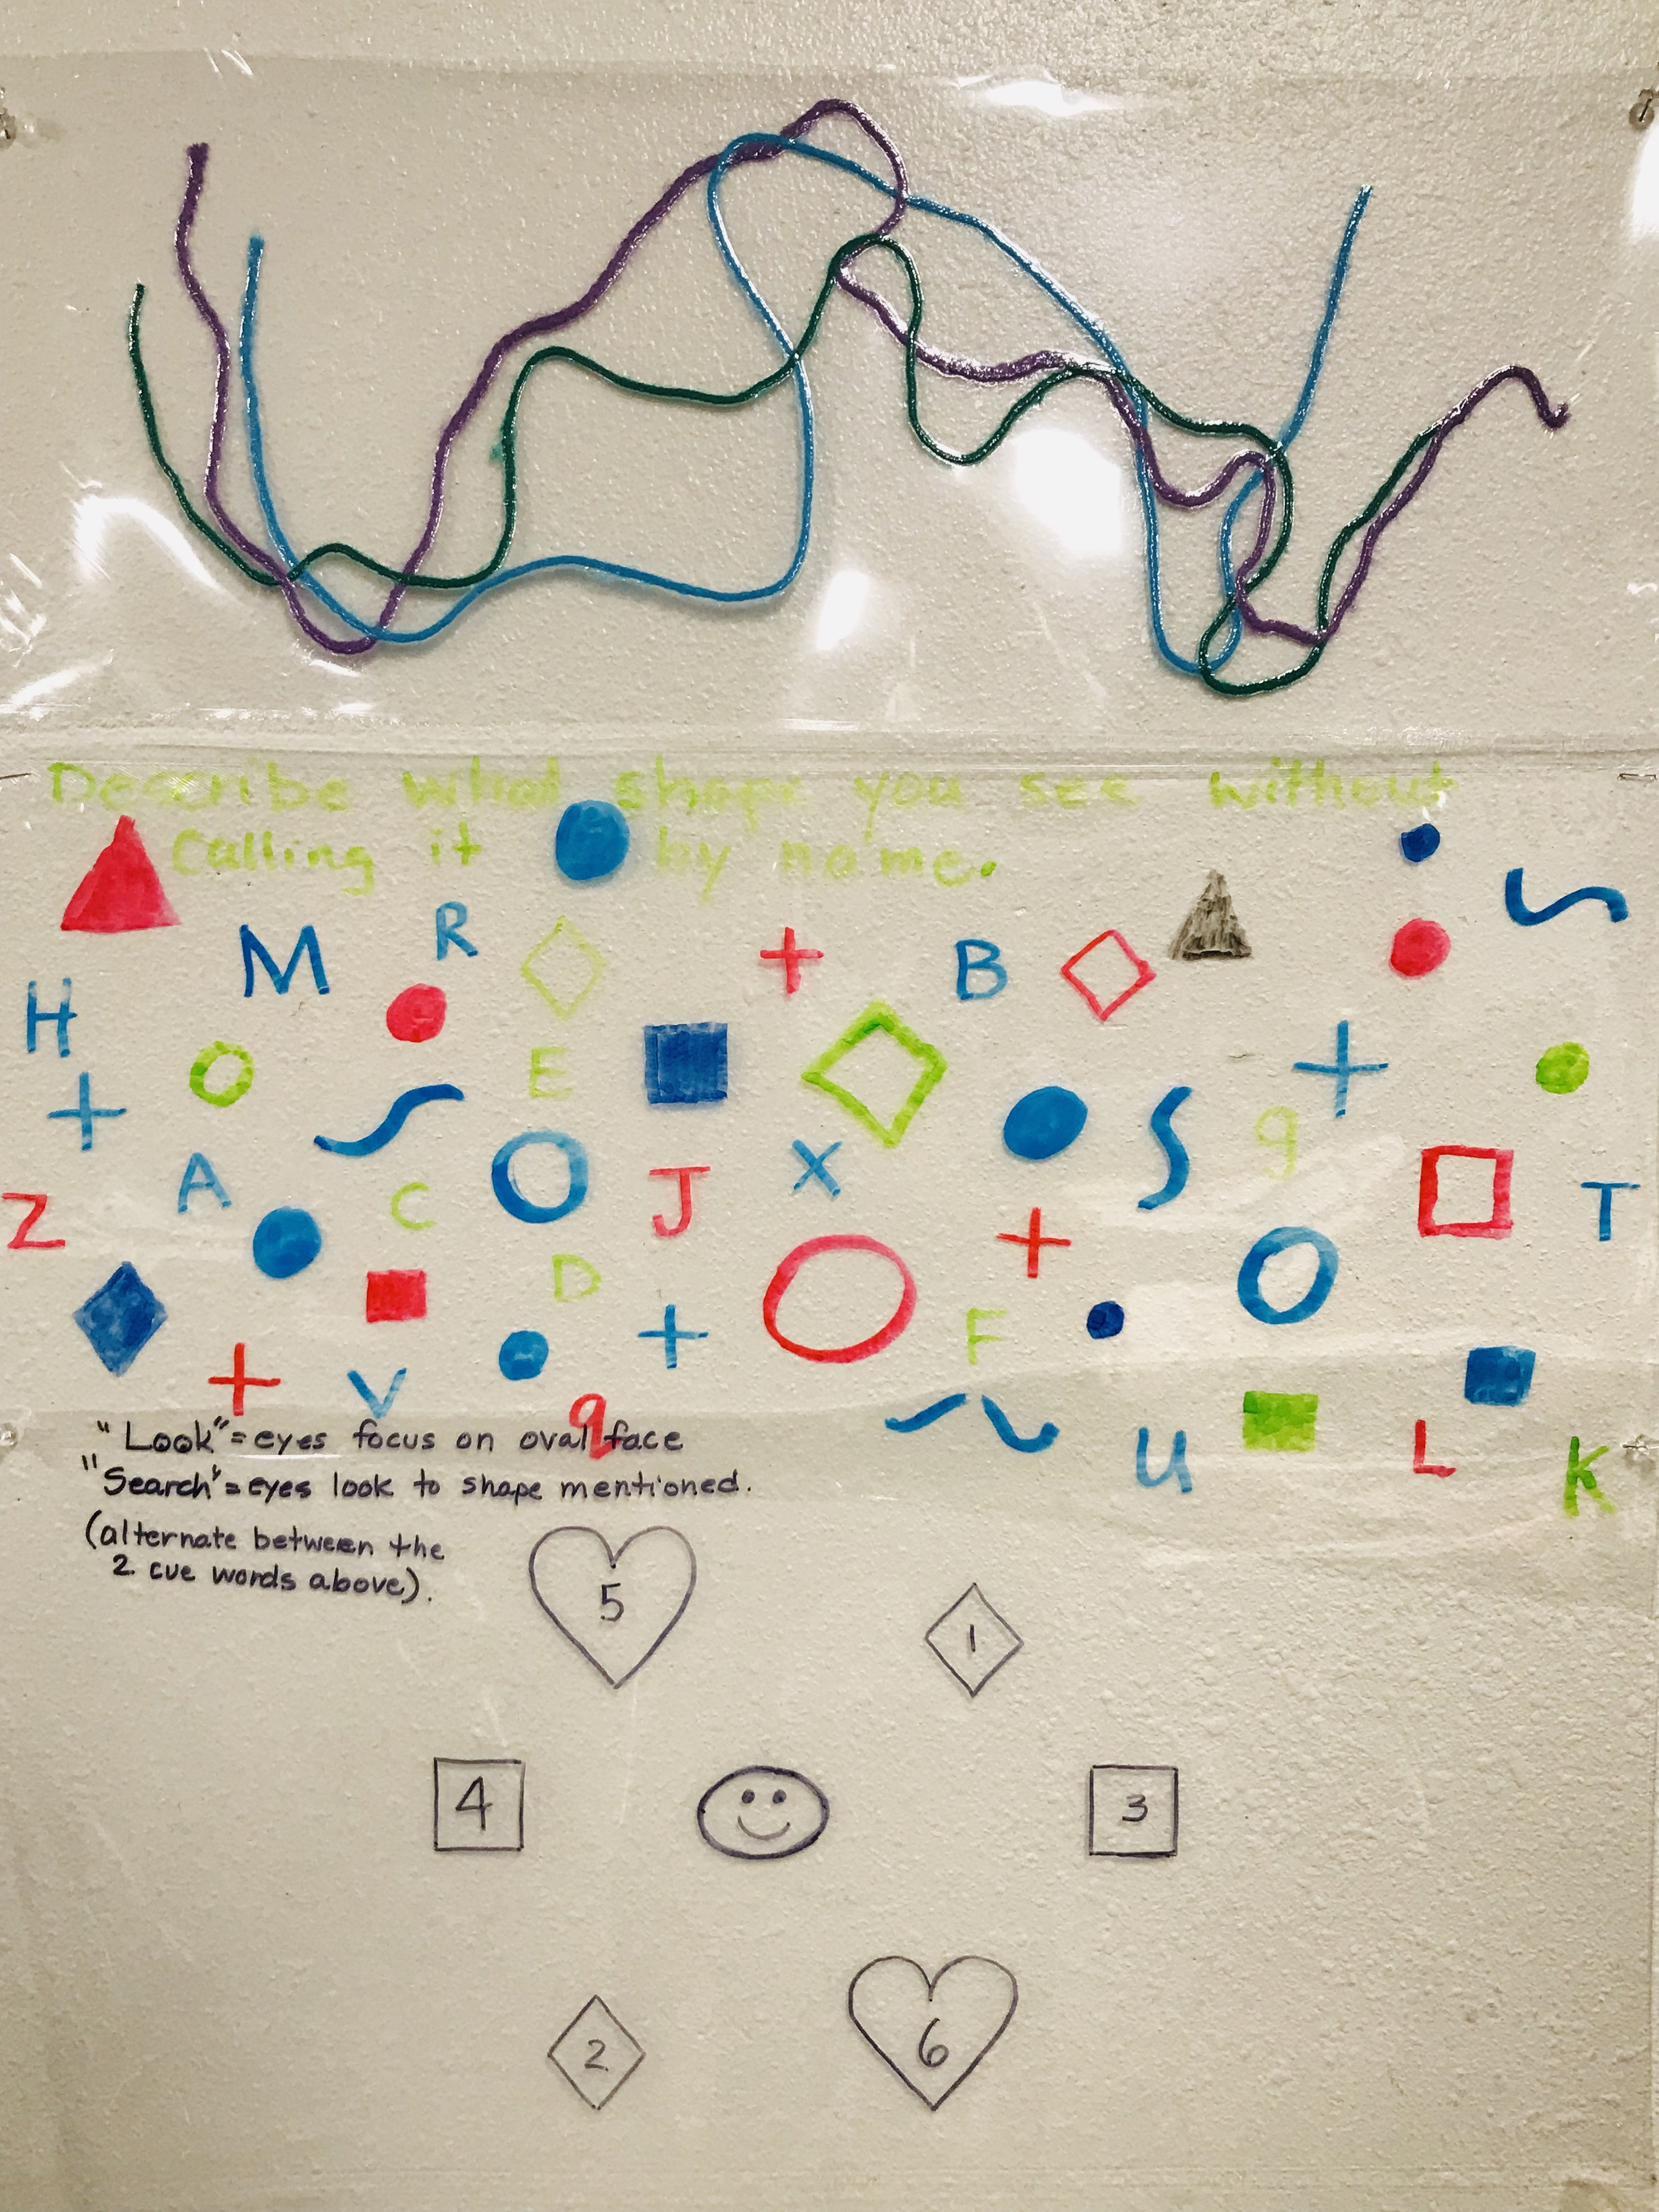 Laminated folder of strings, letters, and shapes